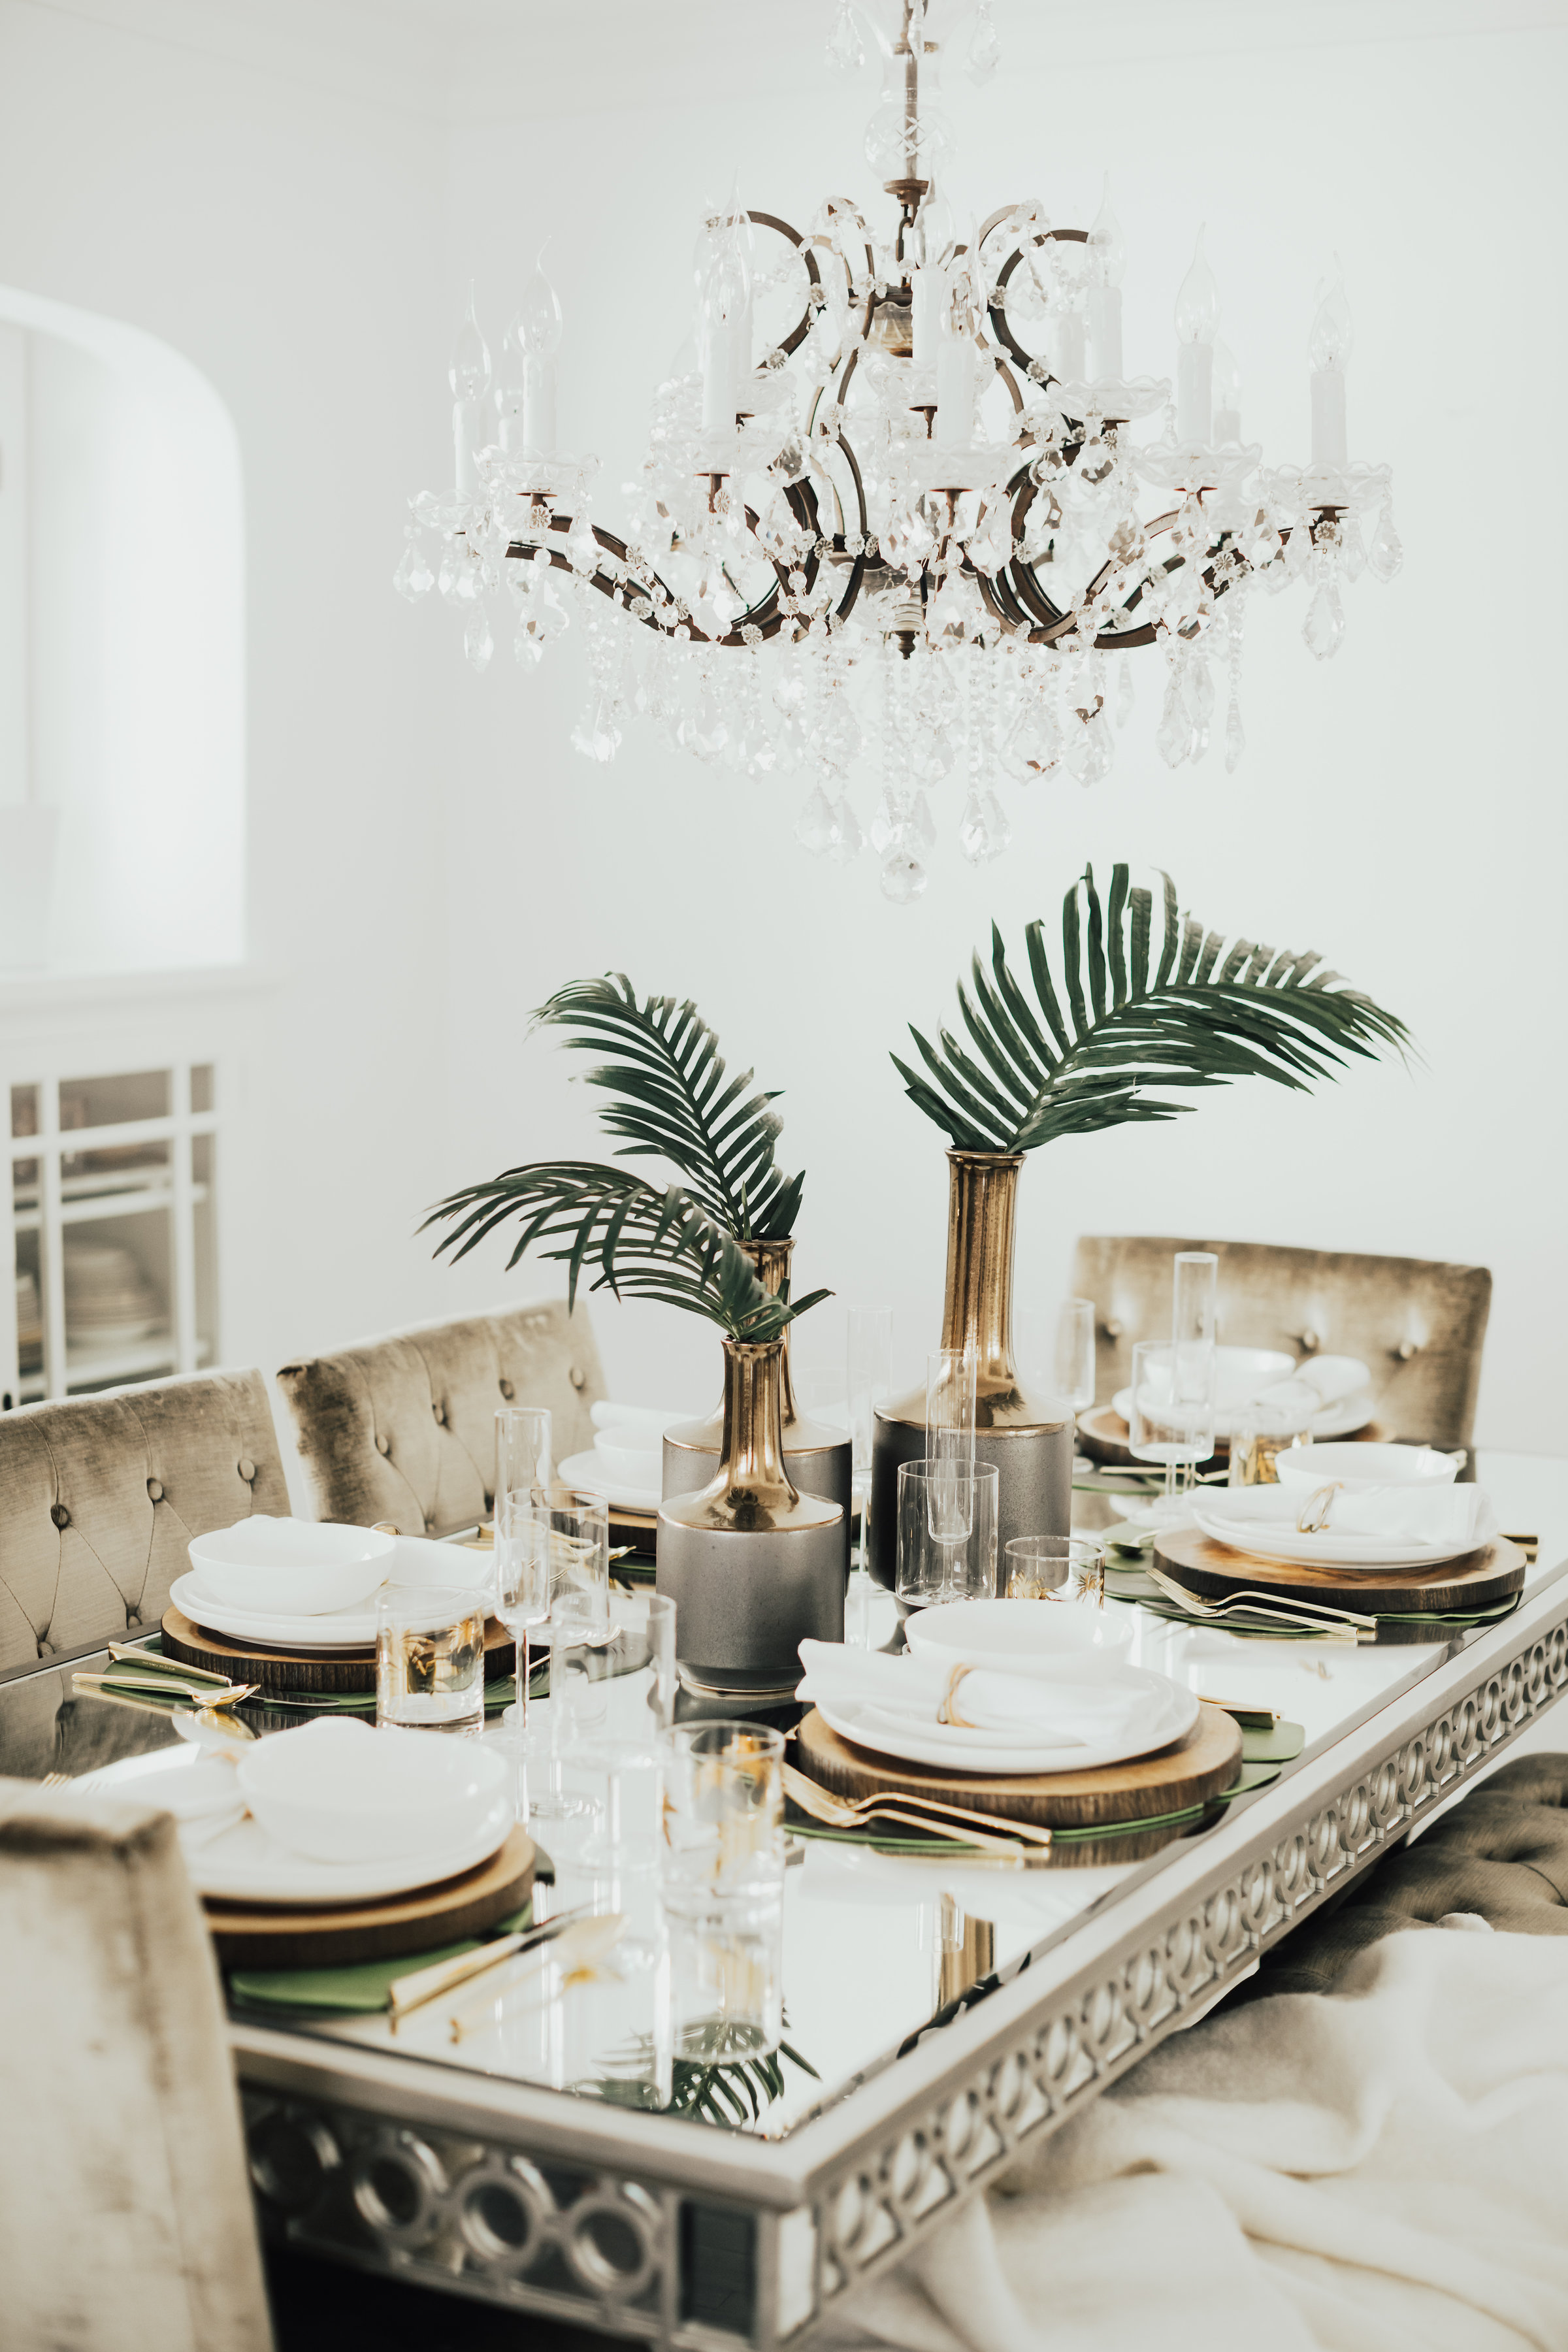 Spring Entertaining Made Simple With Bed Bath Amp Beyond